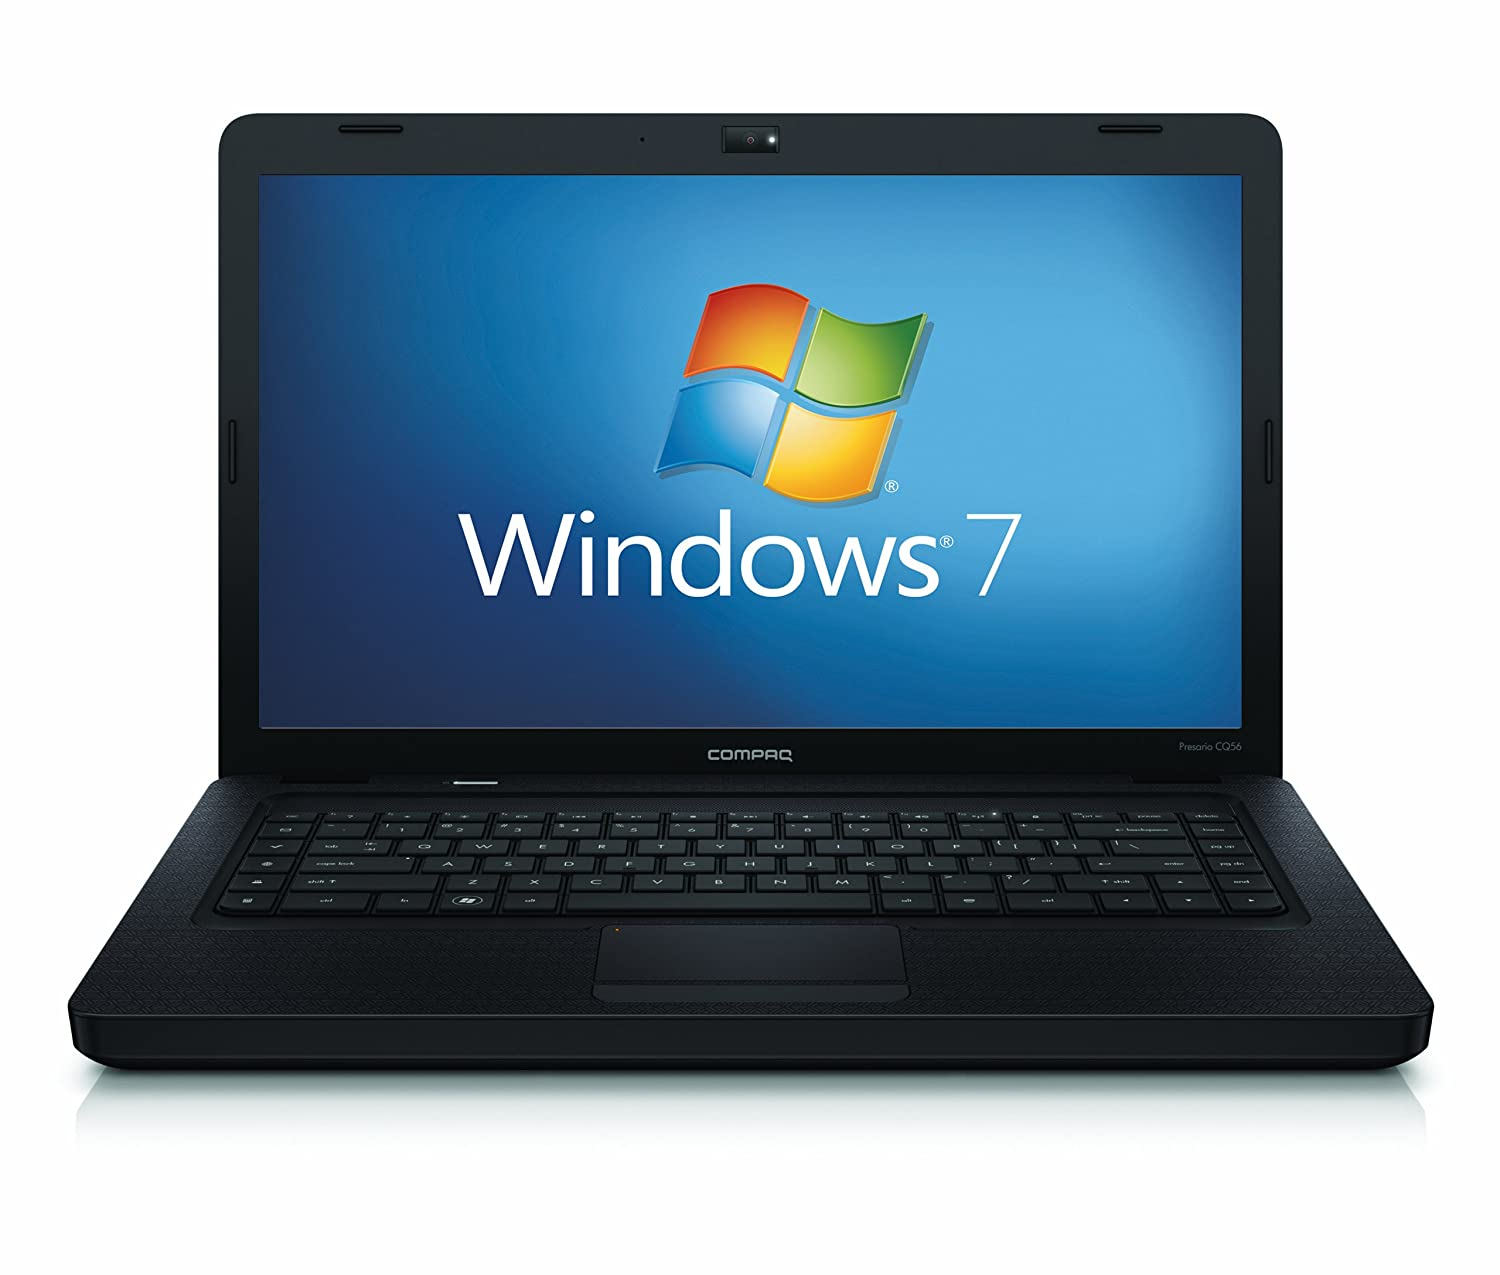 HP PRESARIO CQ56 WINDOWS 8 DRIVER